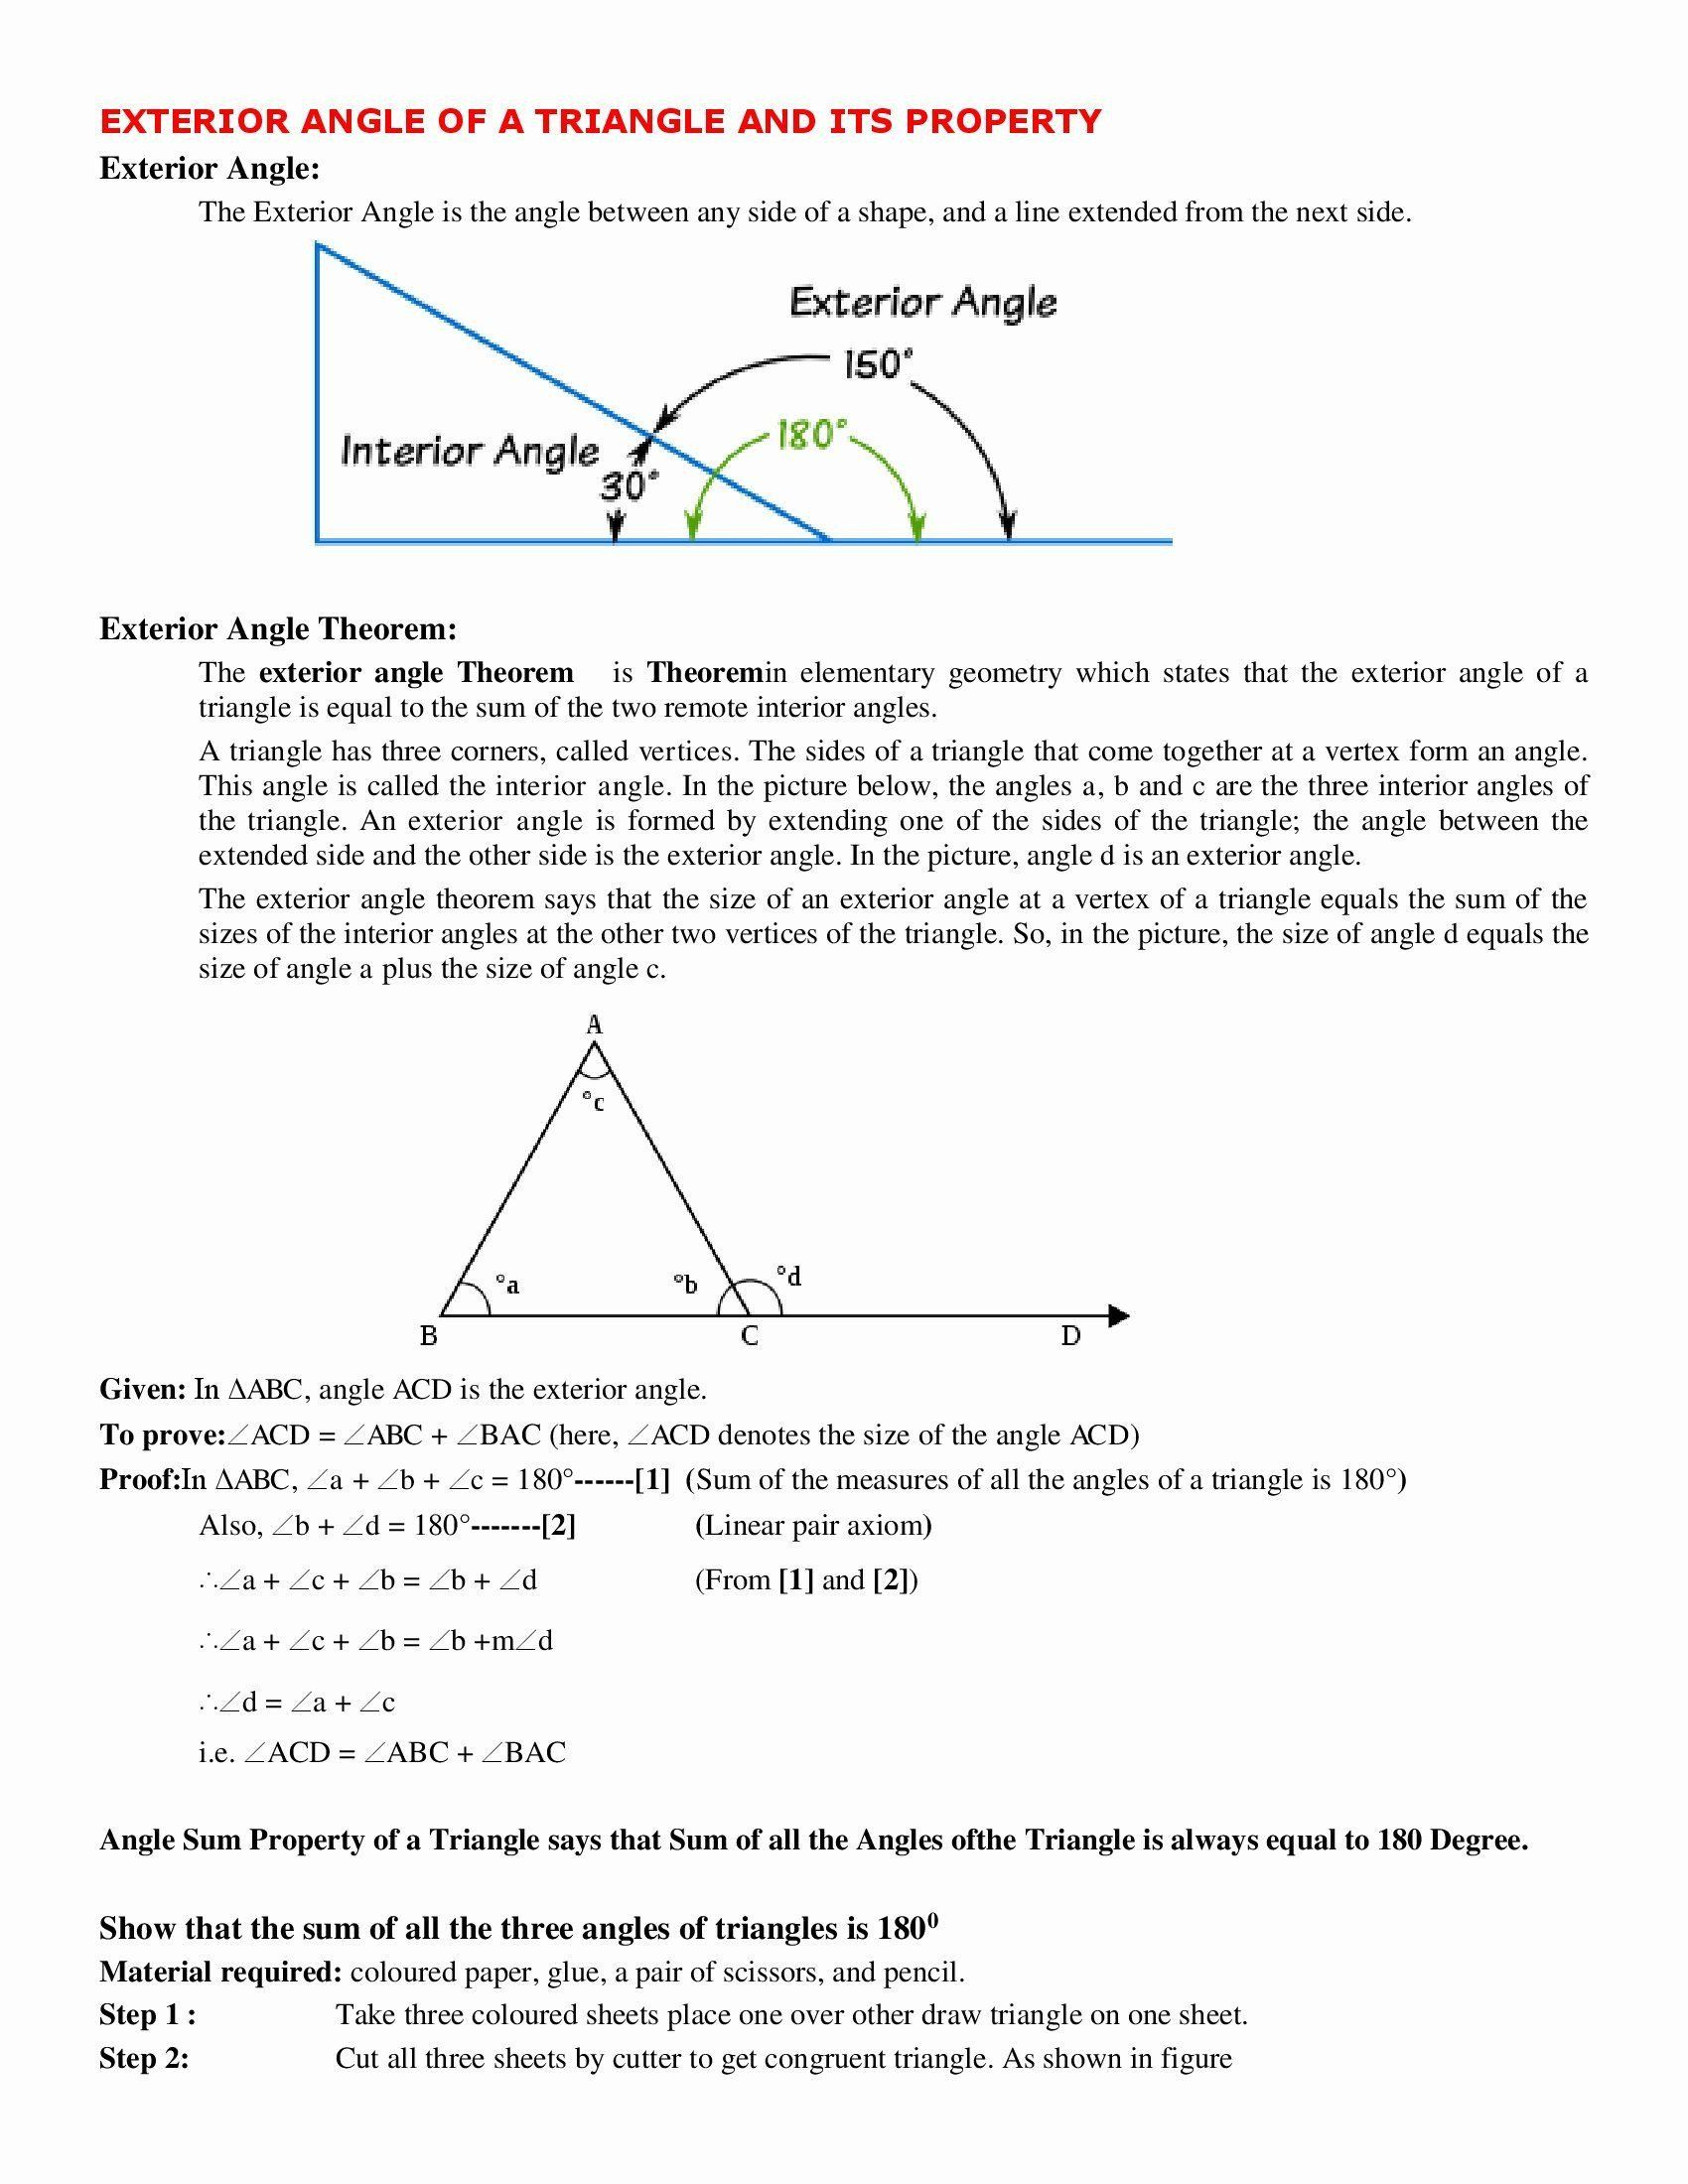 Triangle Inequality Theorem Worksheet 50 Exterior Angle